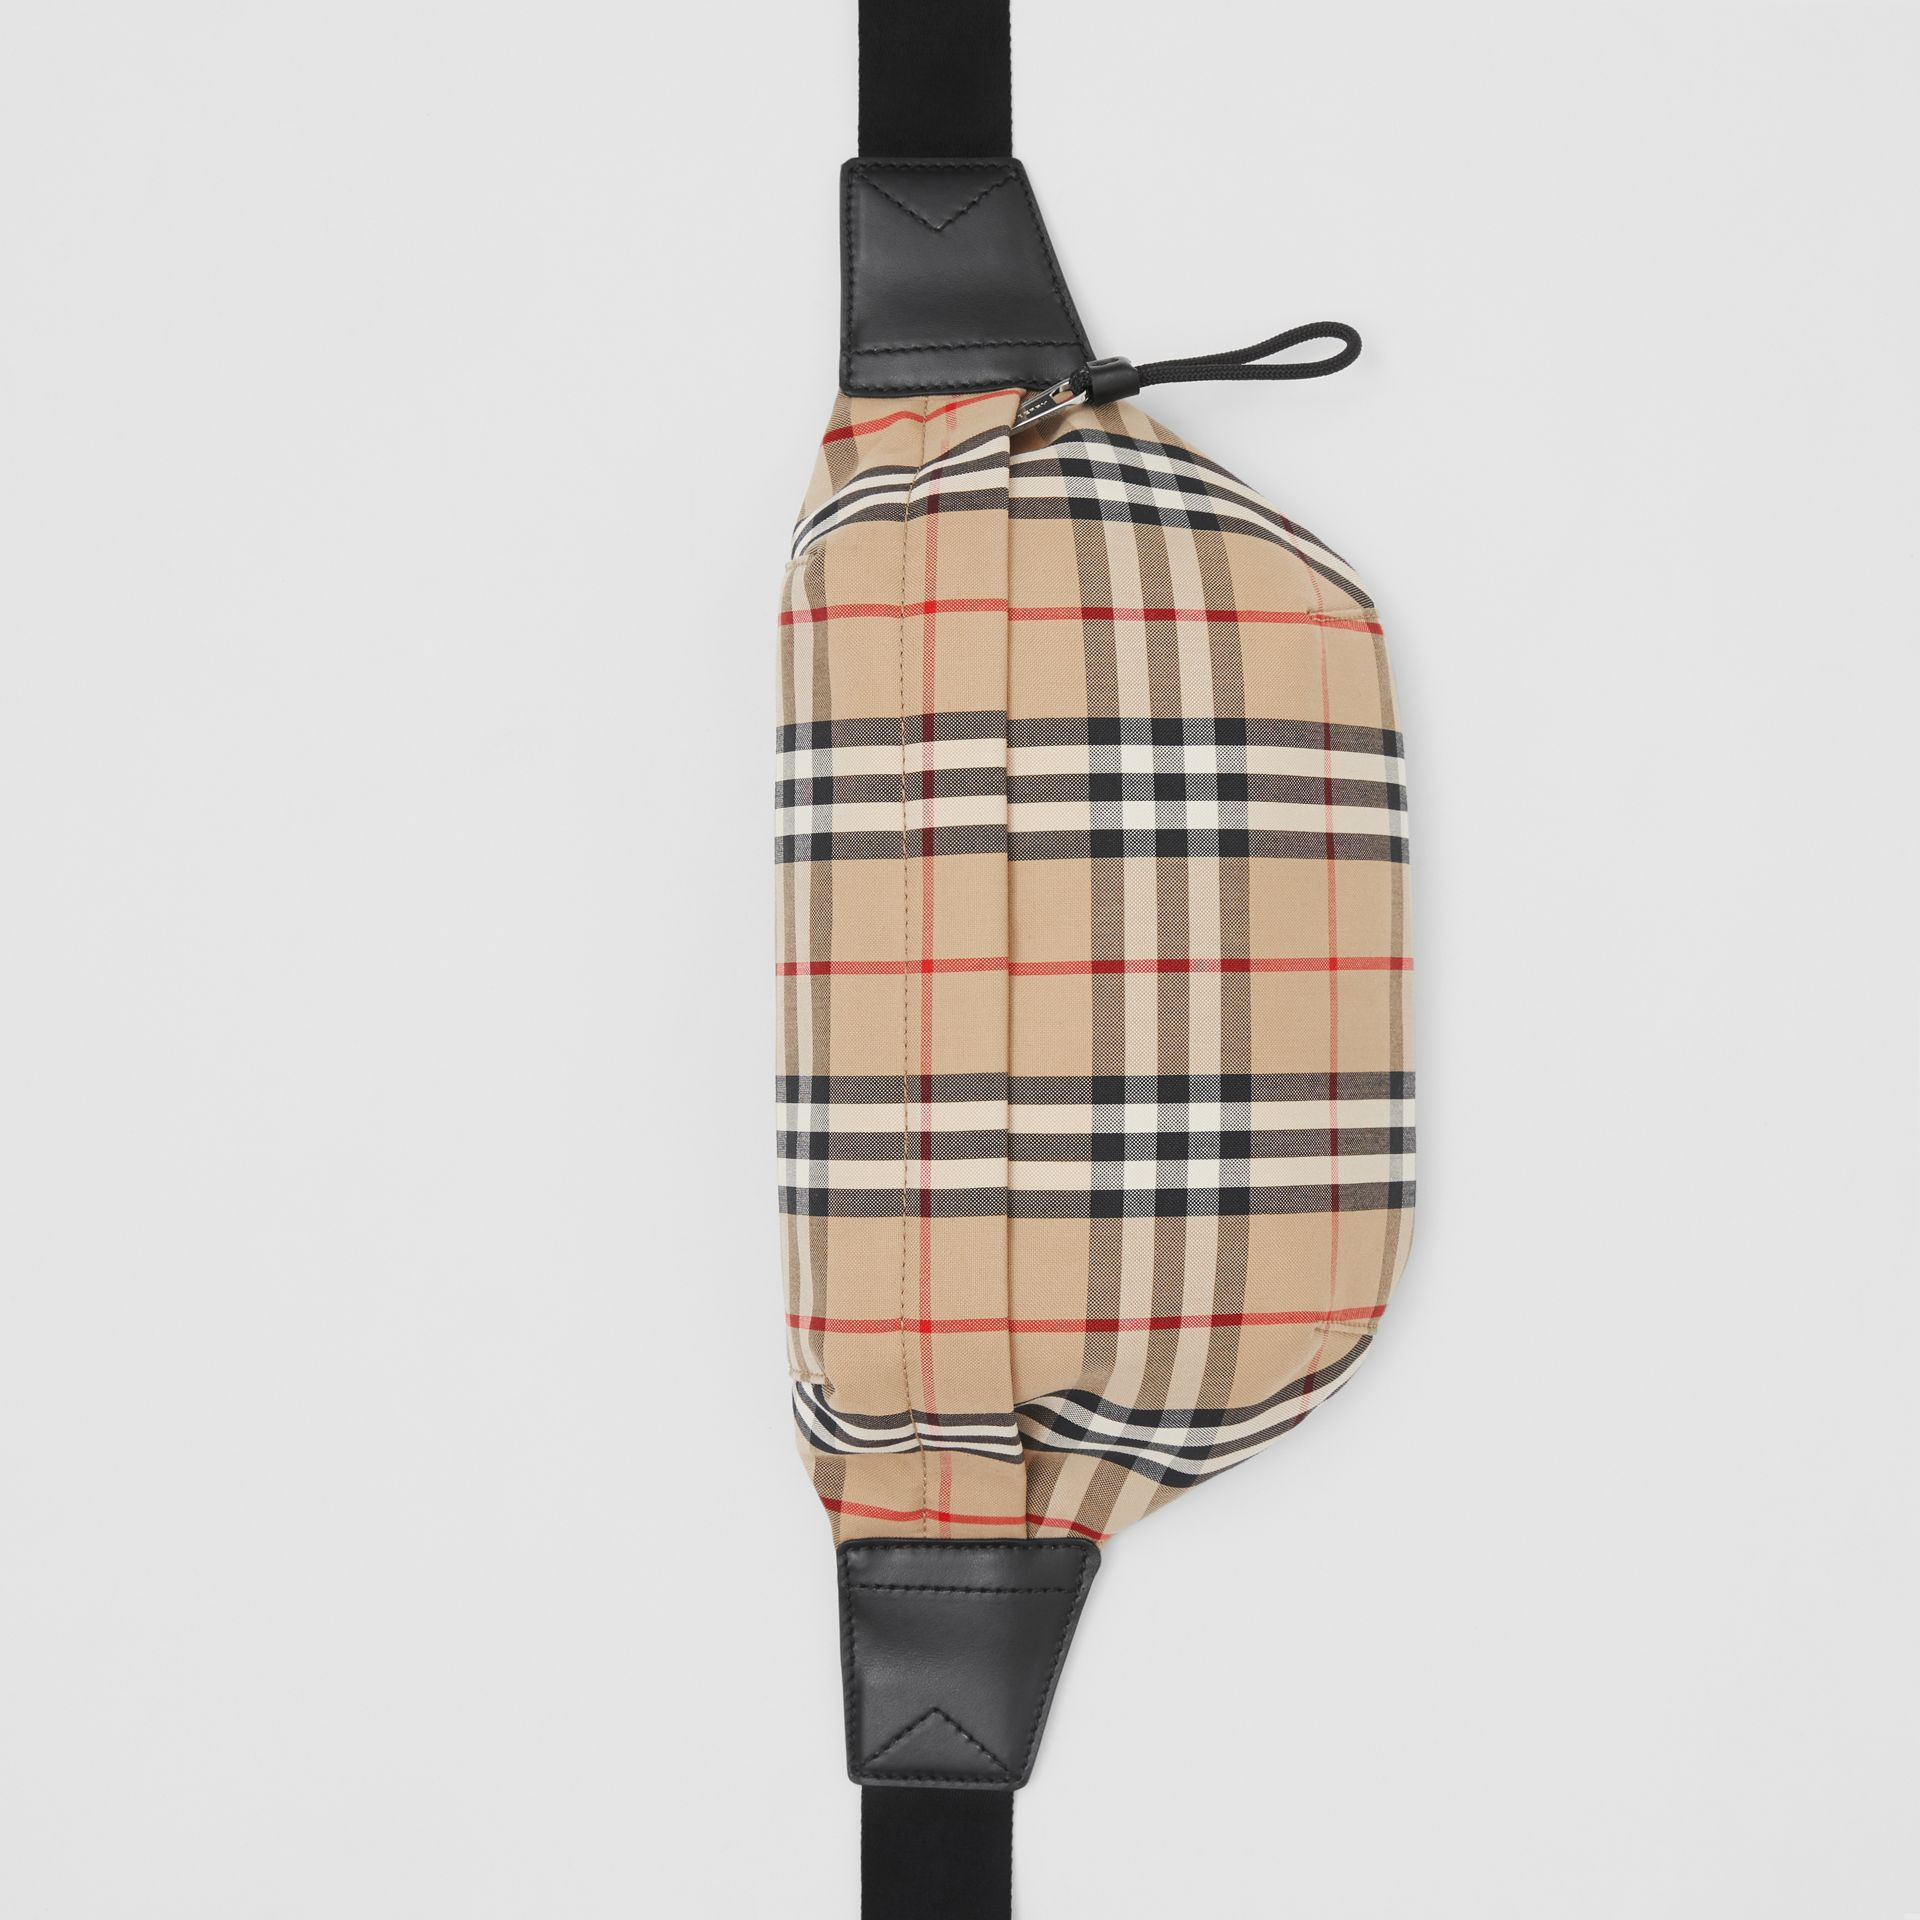 Medium Vintage Check Bonded Cotton Bum Bag in Archive Beige | Burberry - gallery image 4